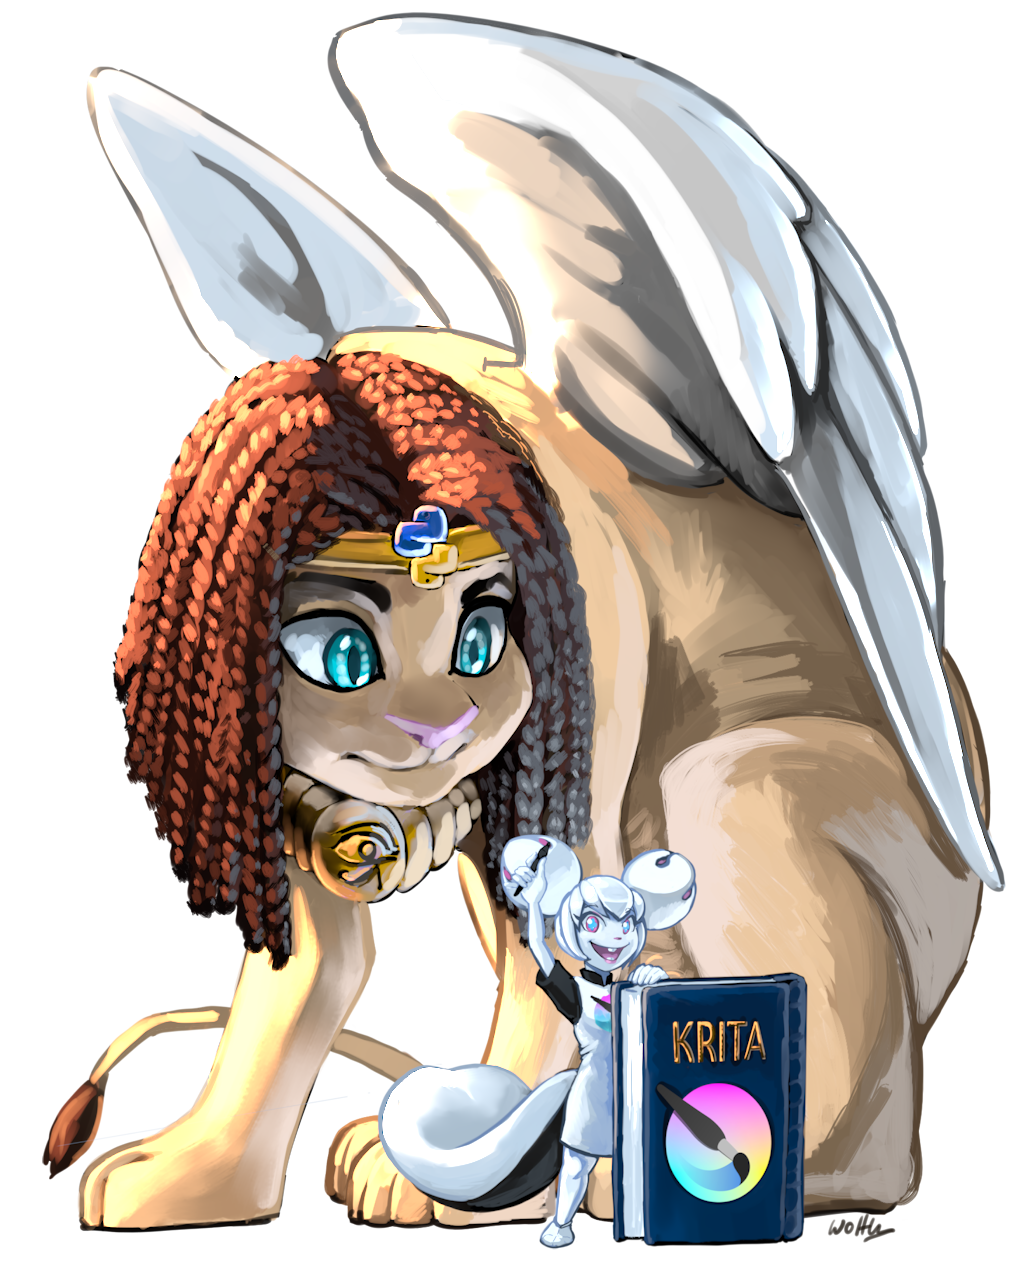 "Kiki, the Krita mascot, is on the foreground, leaning on a book with the title ""Krita"" and the Krita logo. In her right hand, she's holding up a stylus, and she's facing the audience with a big grin. On the background a giant sphinx is sitting, hunched over to look at Kiki."